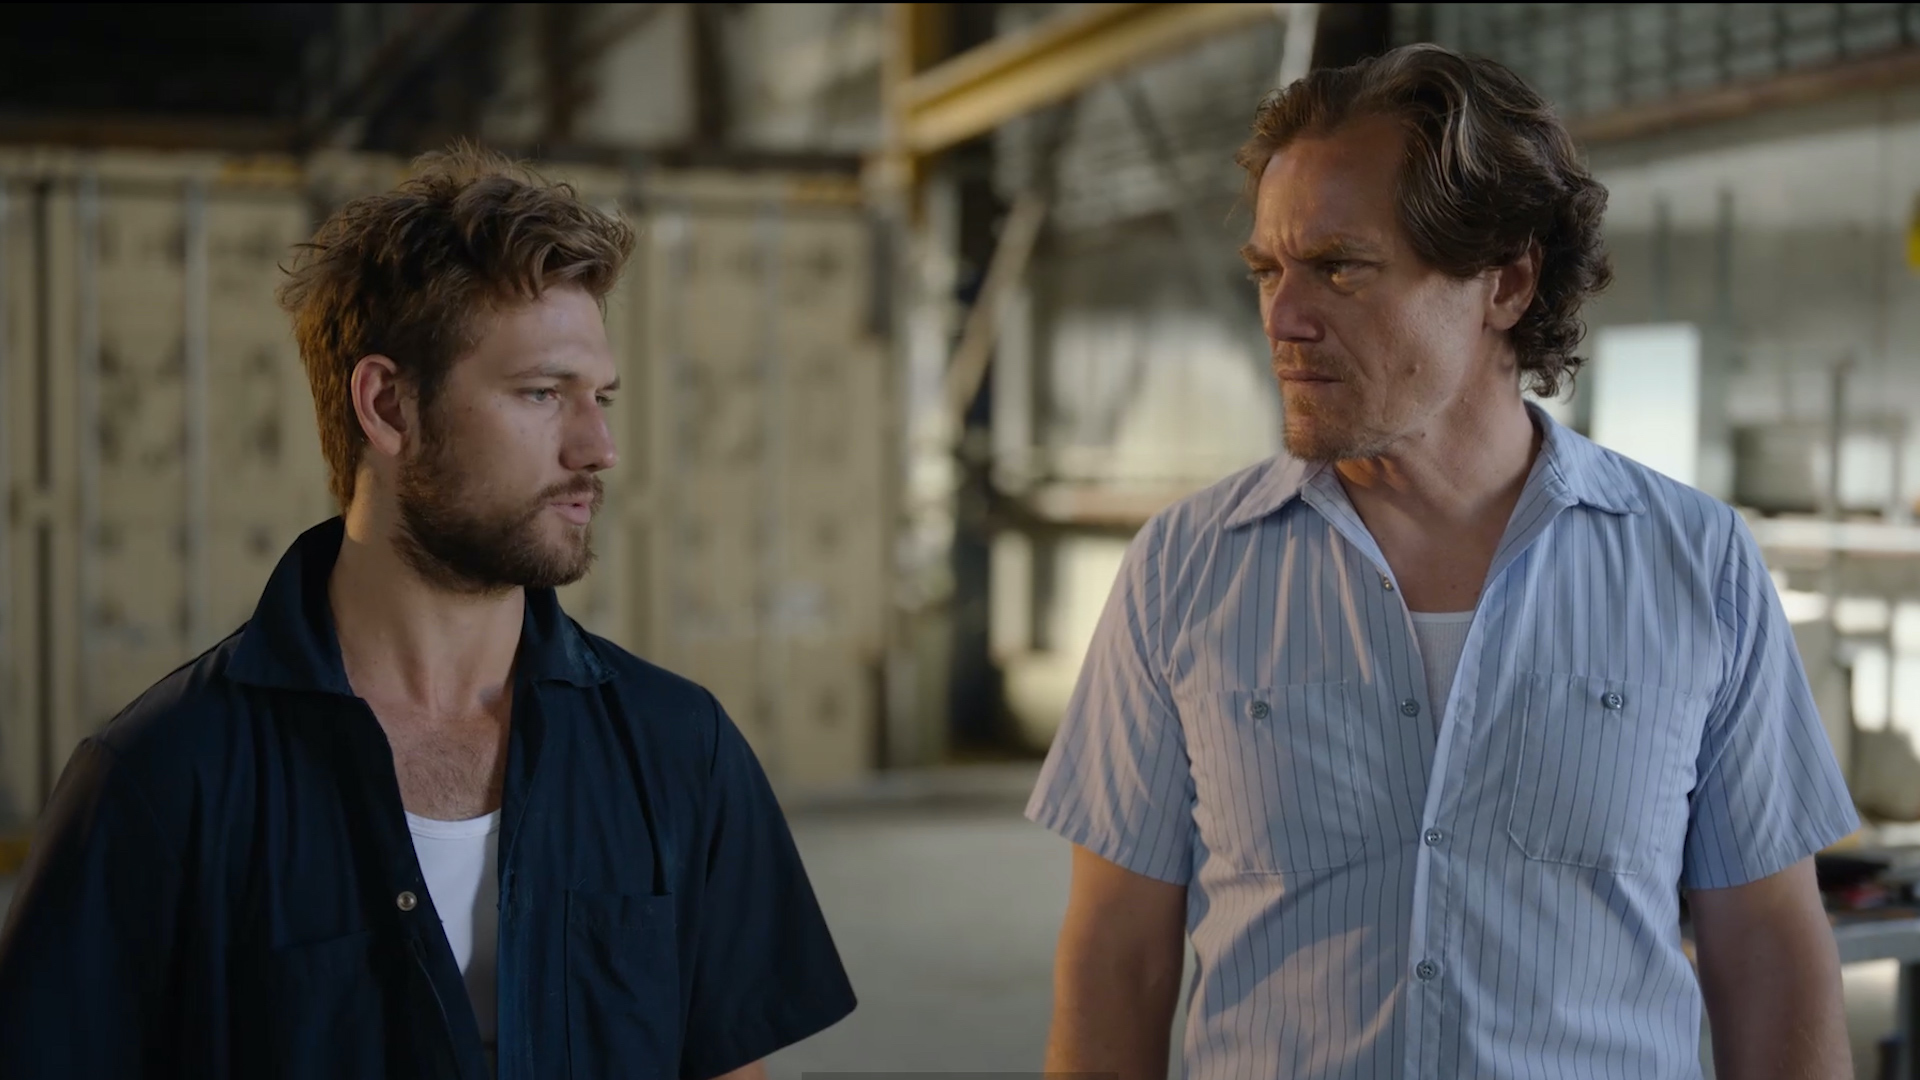 "(L - R) Alex Pettyfer as Ellis Beck and Michael Shannon as Mel Donnelly in the action/thriller film, "" ECHO BOOMERS ,"" a Saban Films release. Photo courtesy of Saban Films."